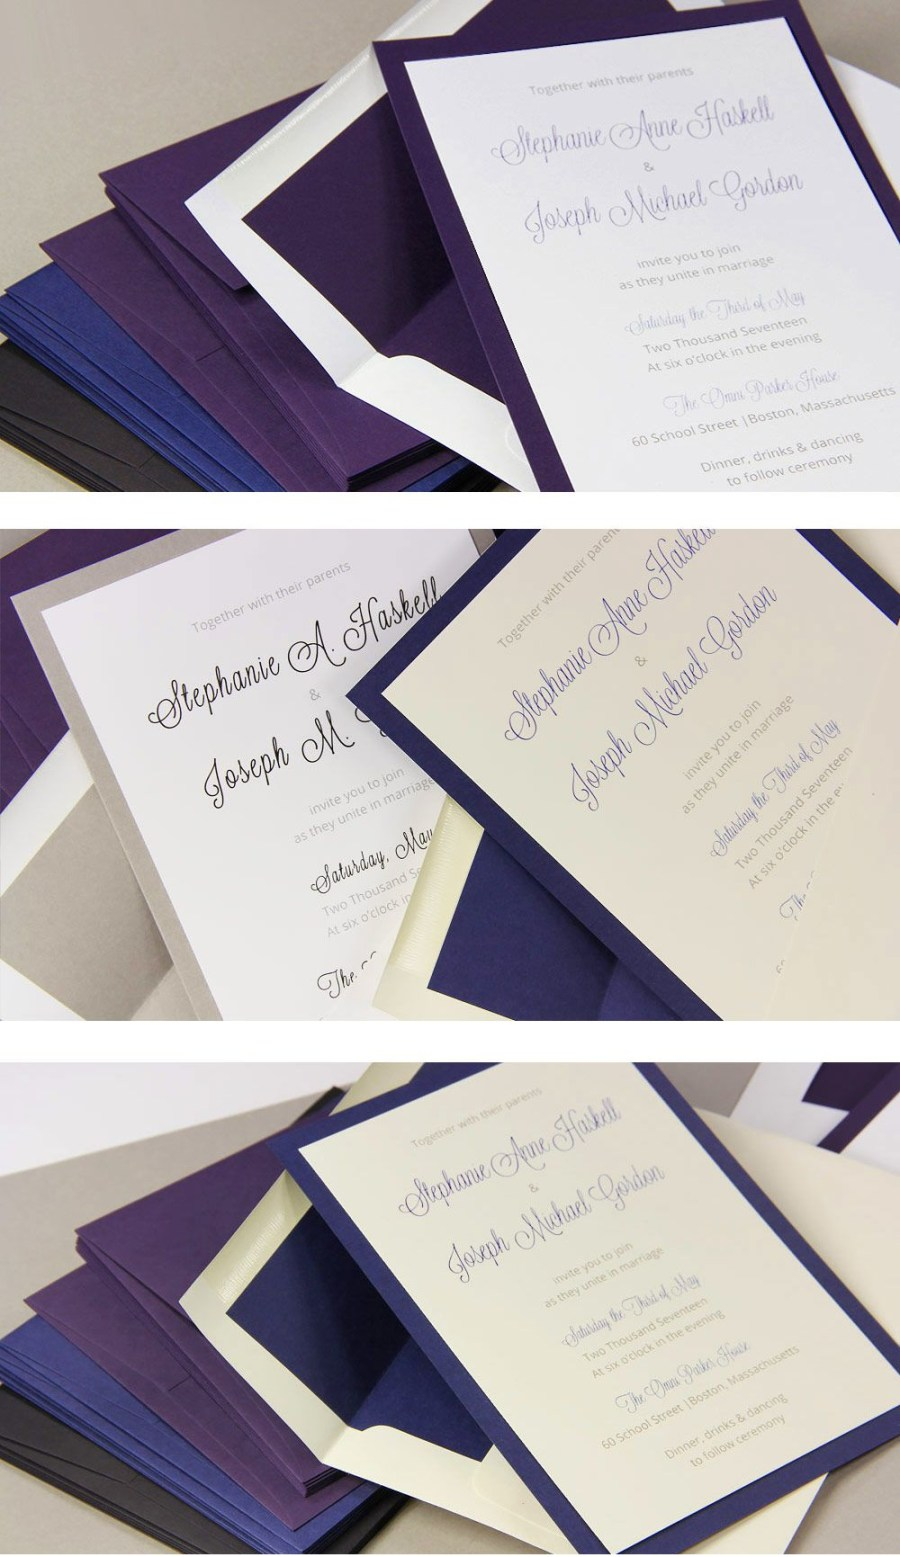 Making Your Own Wedding Invitations Microsoft Word Template And Step Step Instructions To Make Your